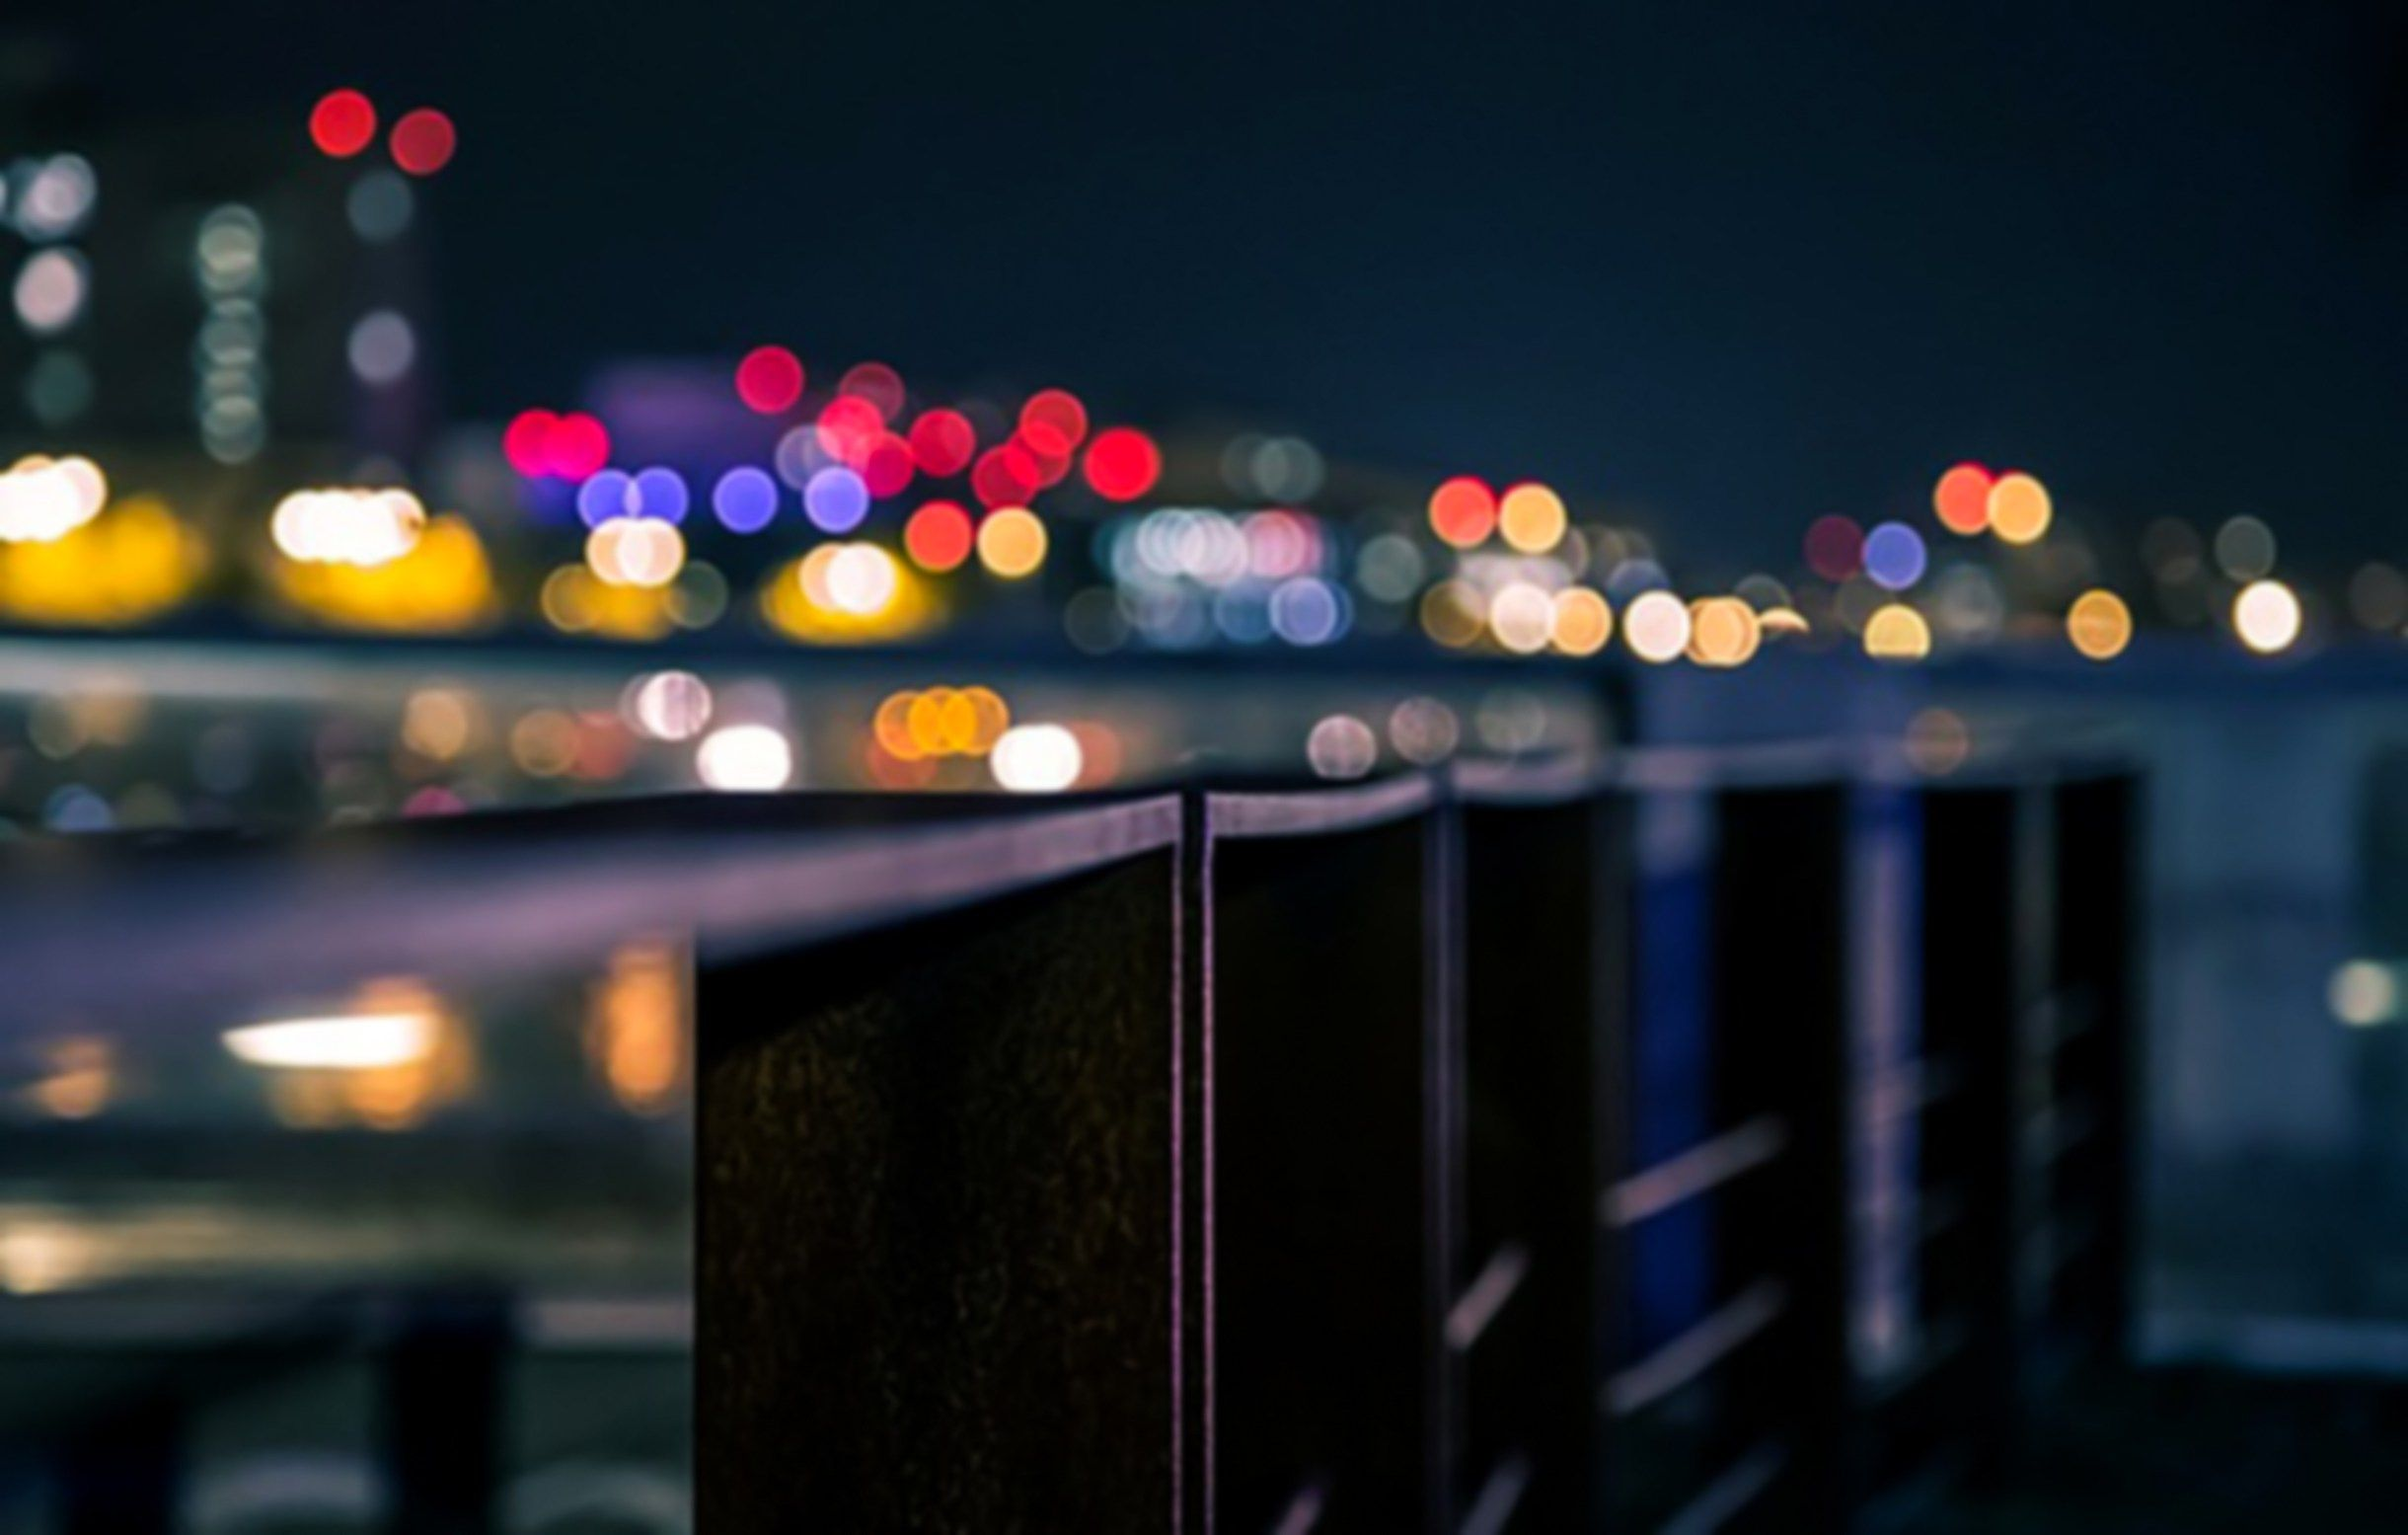 Bokeh Hd Background City Wallpaper Wallpaper Pictures Pc Backgrounds Hd